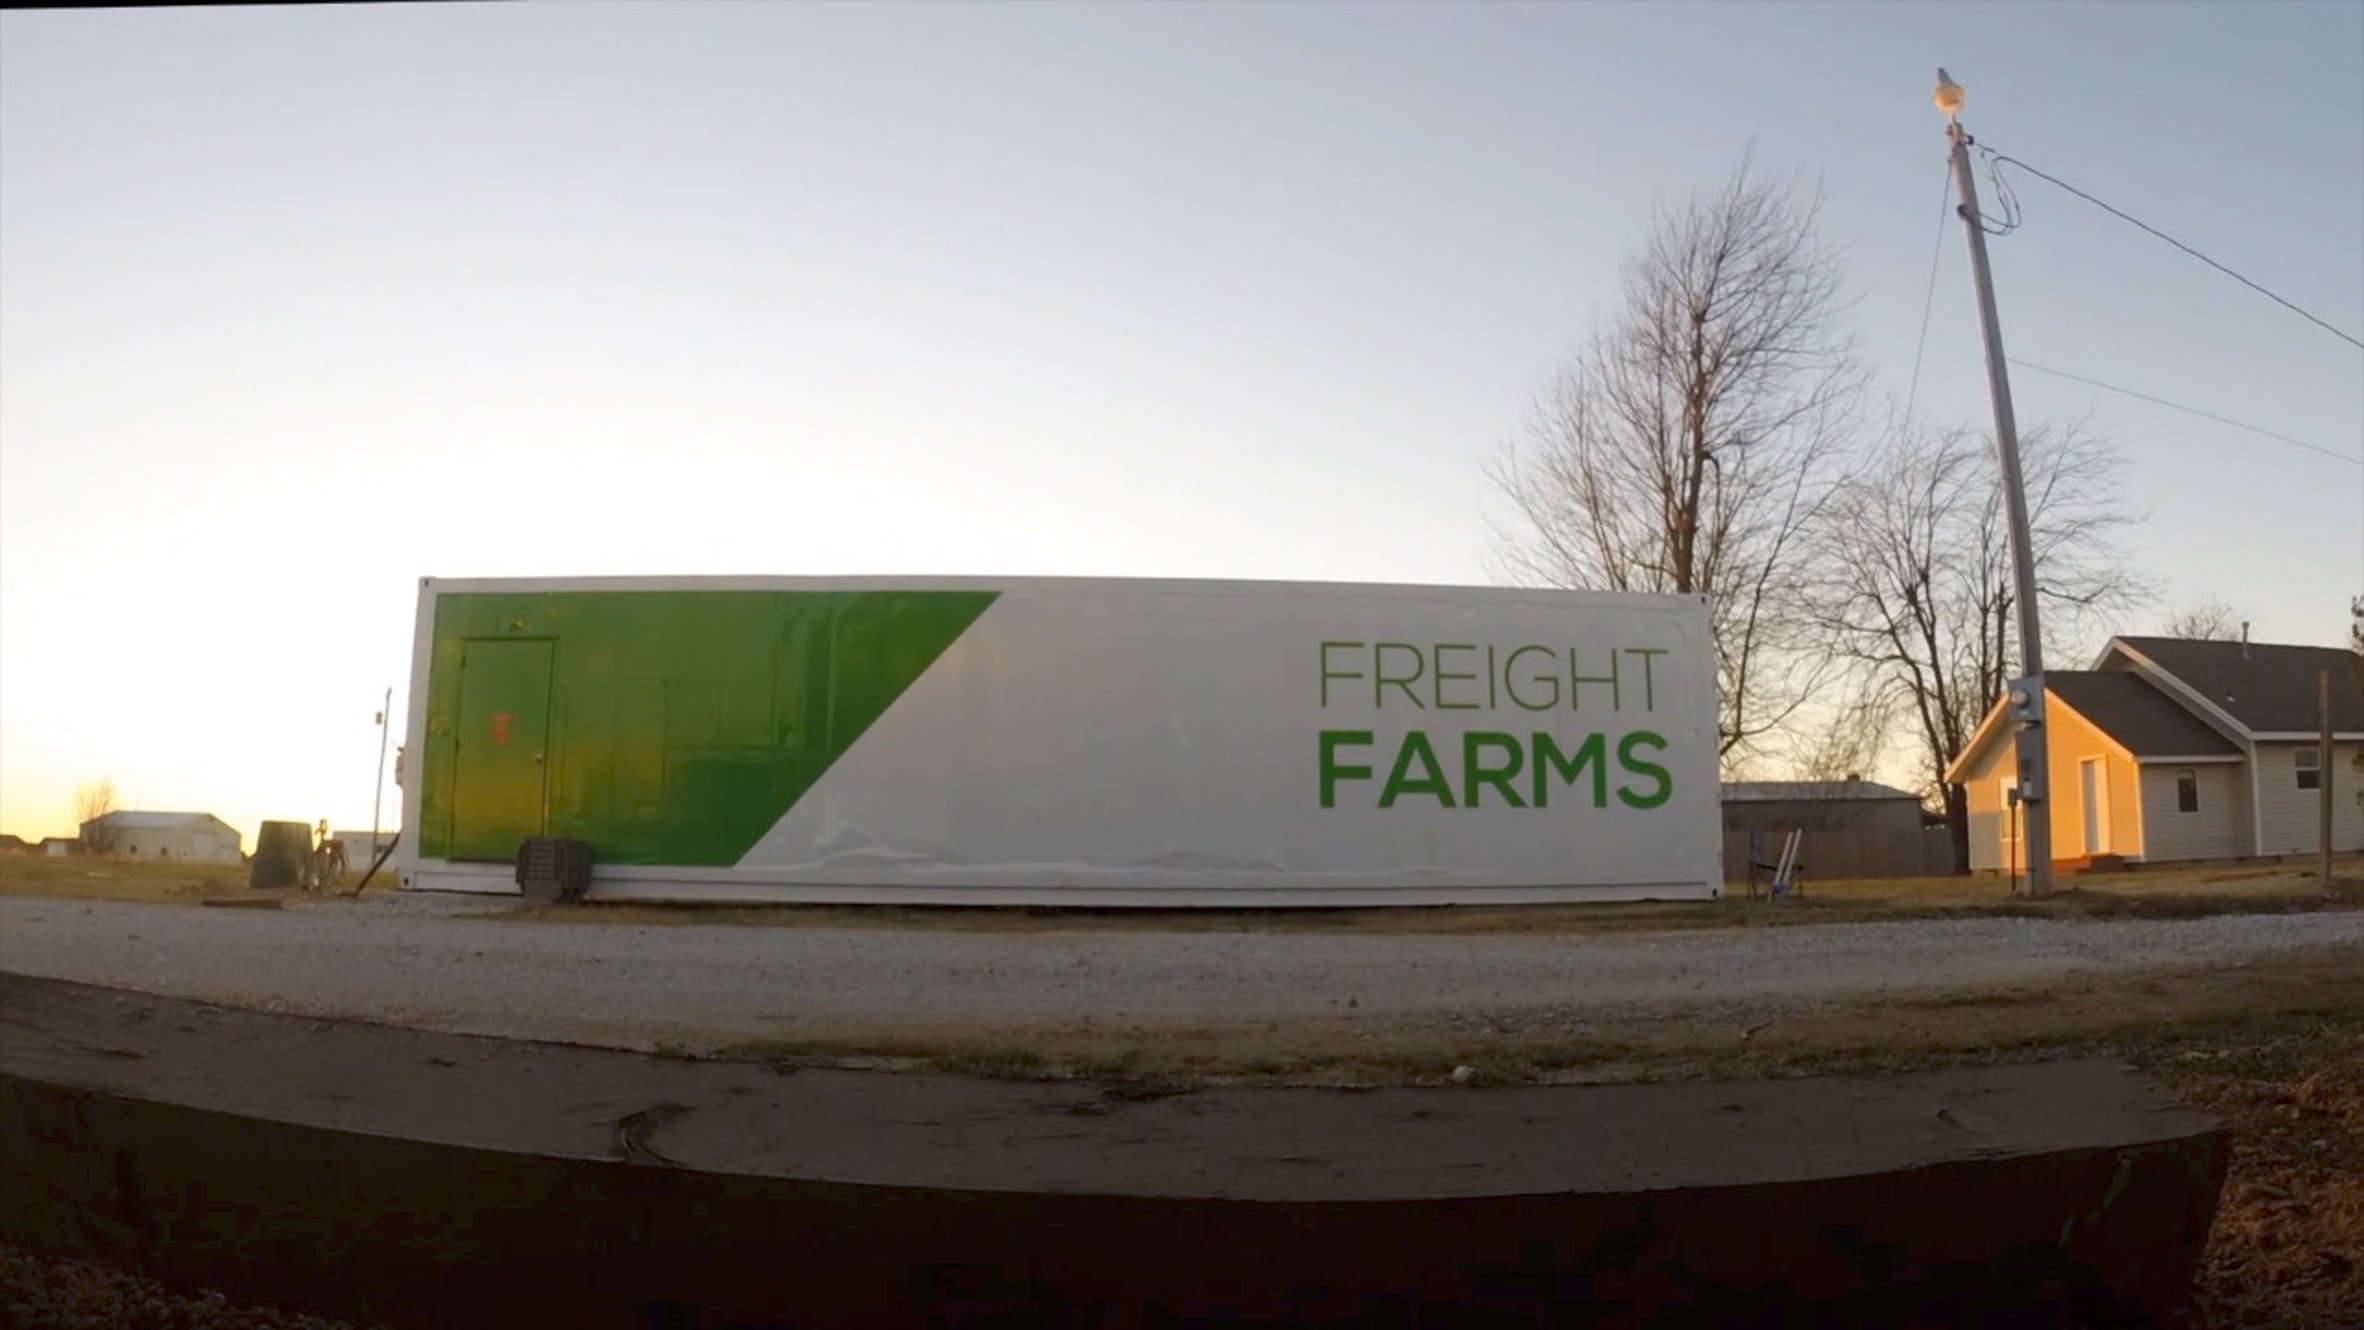 Freight Farms allows crops to be grown inside shipping containers